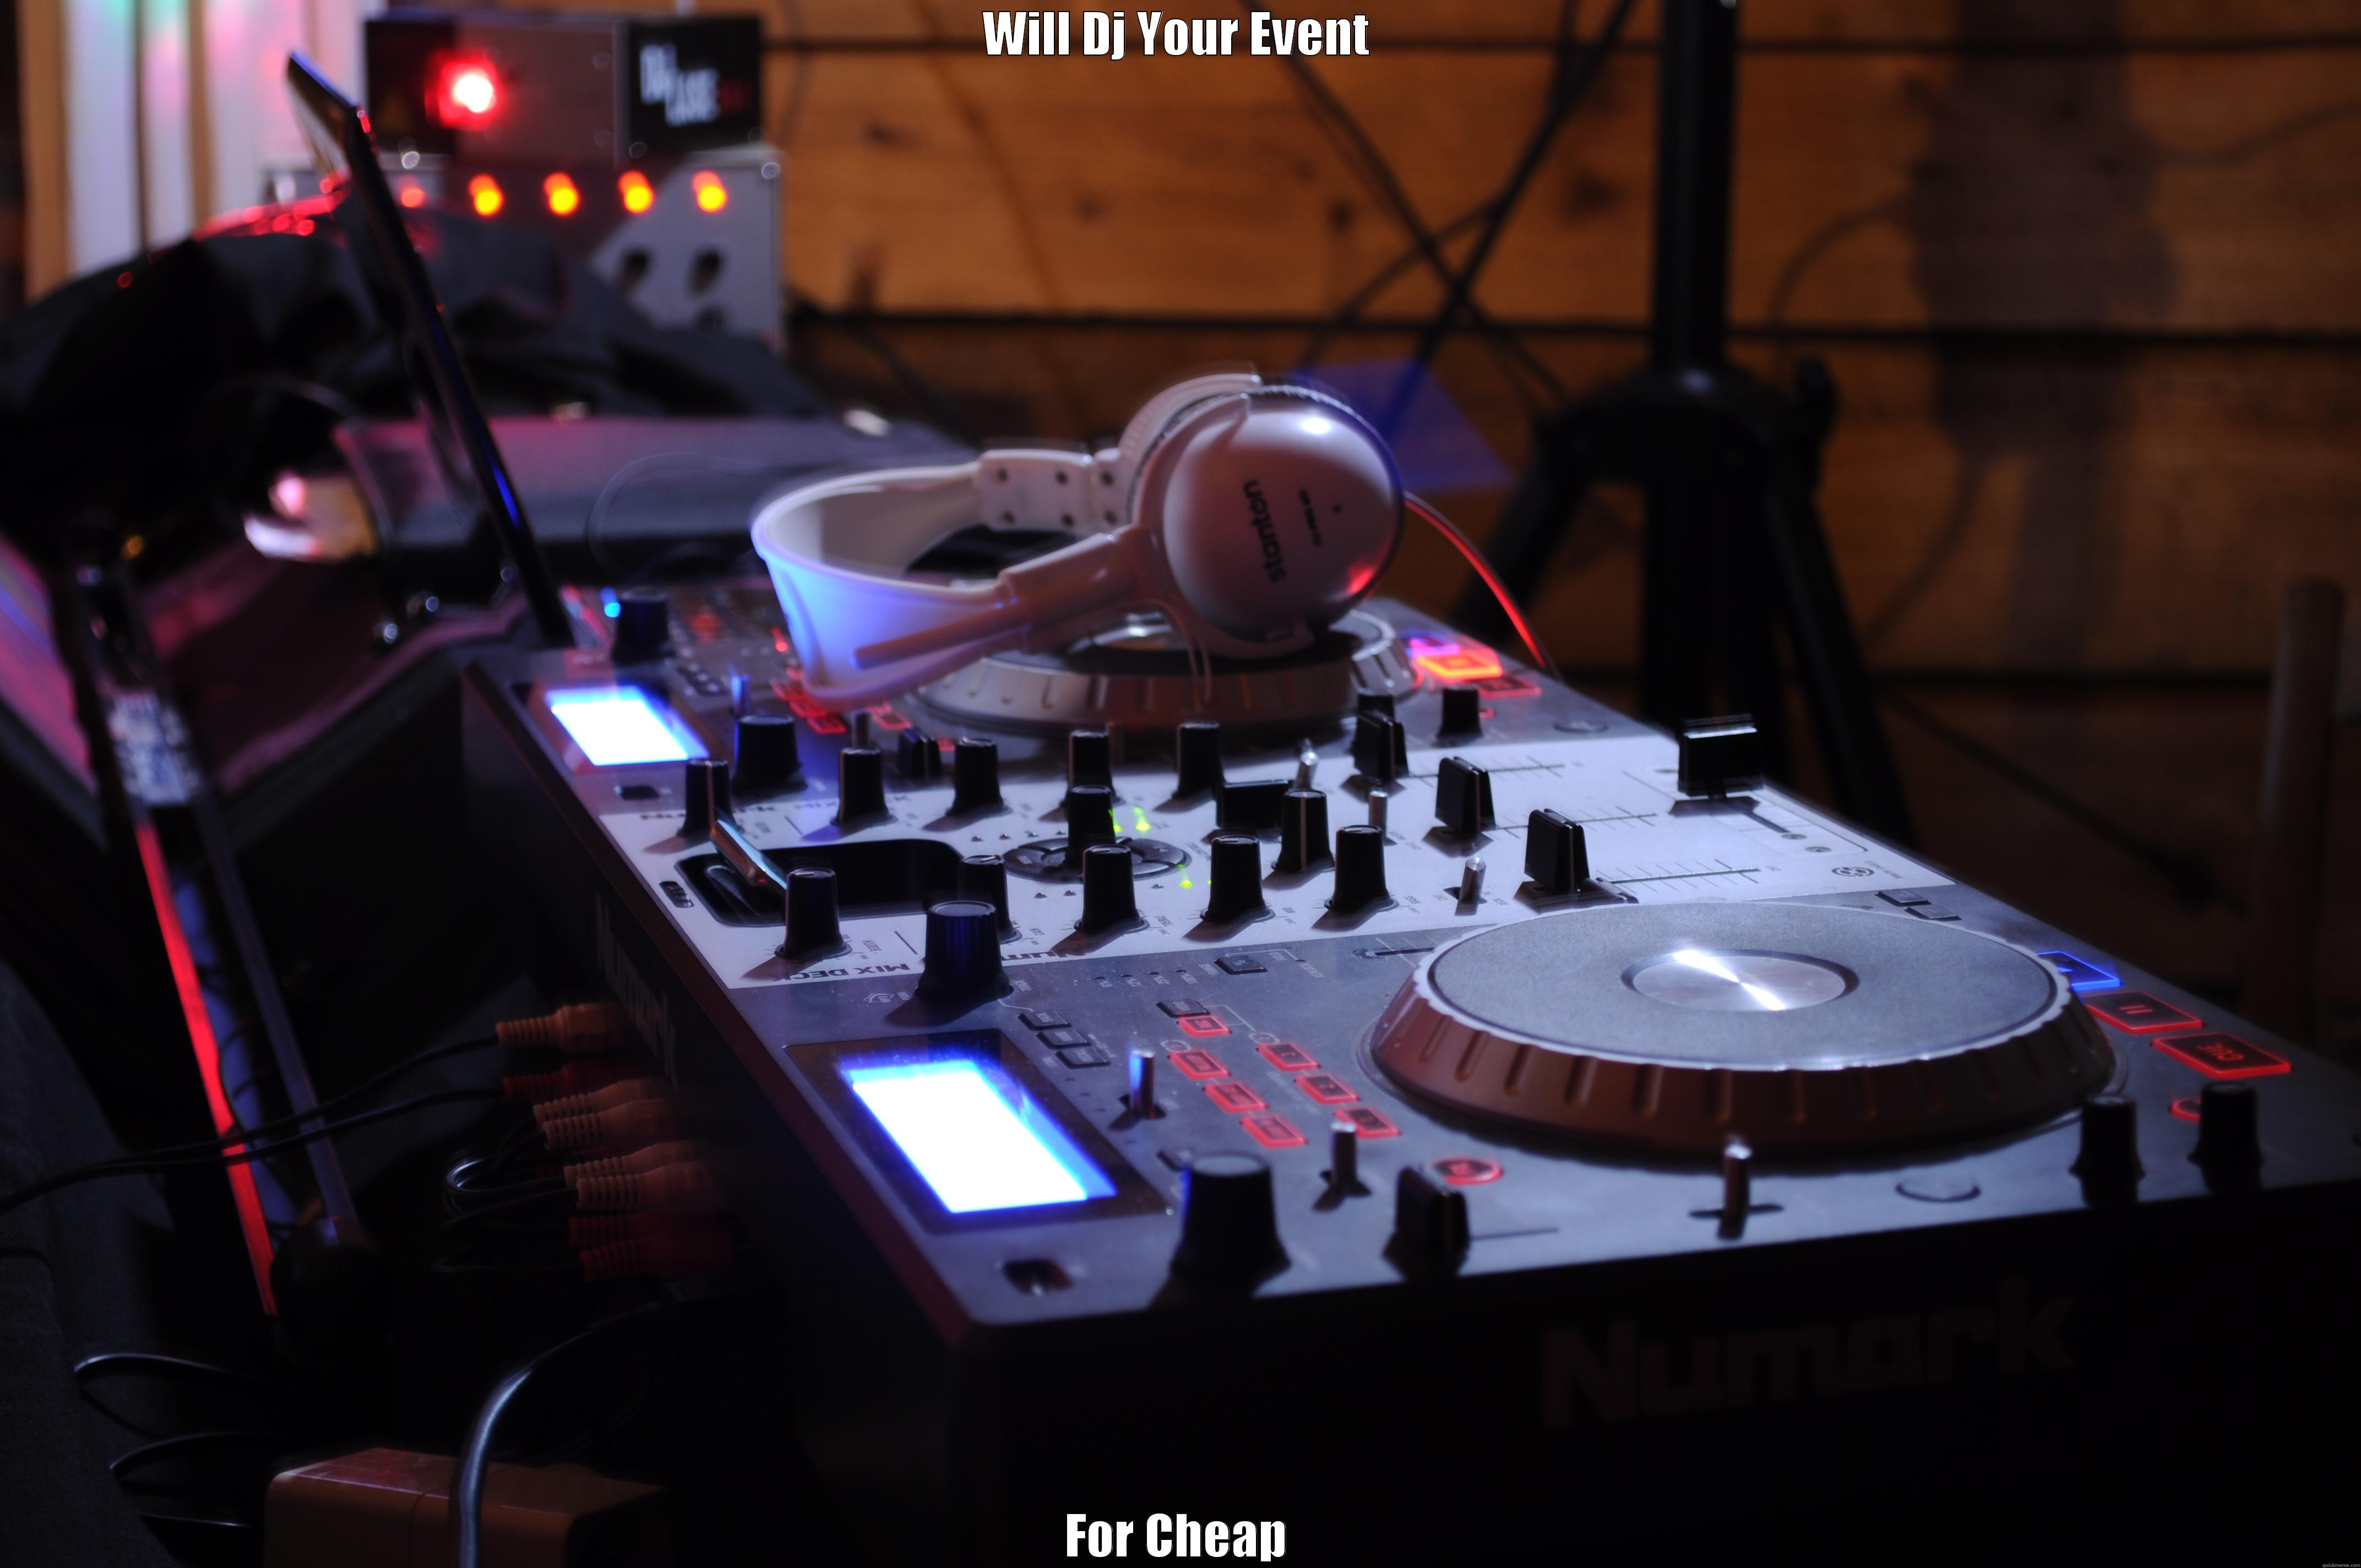 WILL DJ YOUR EVENT FOR CHEAP Misc